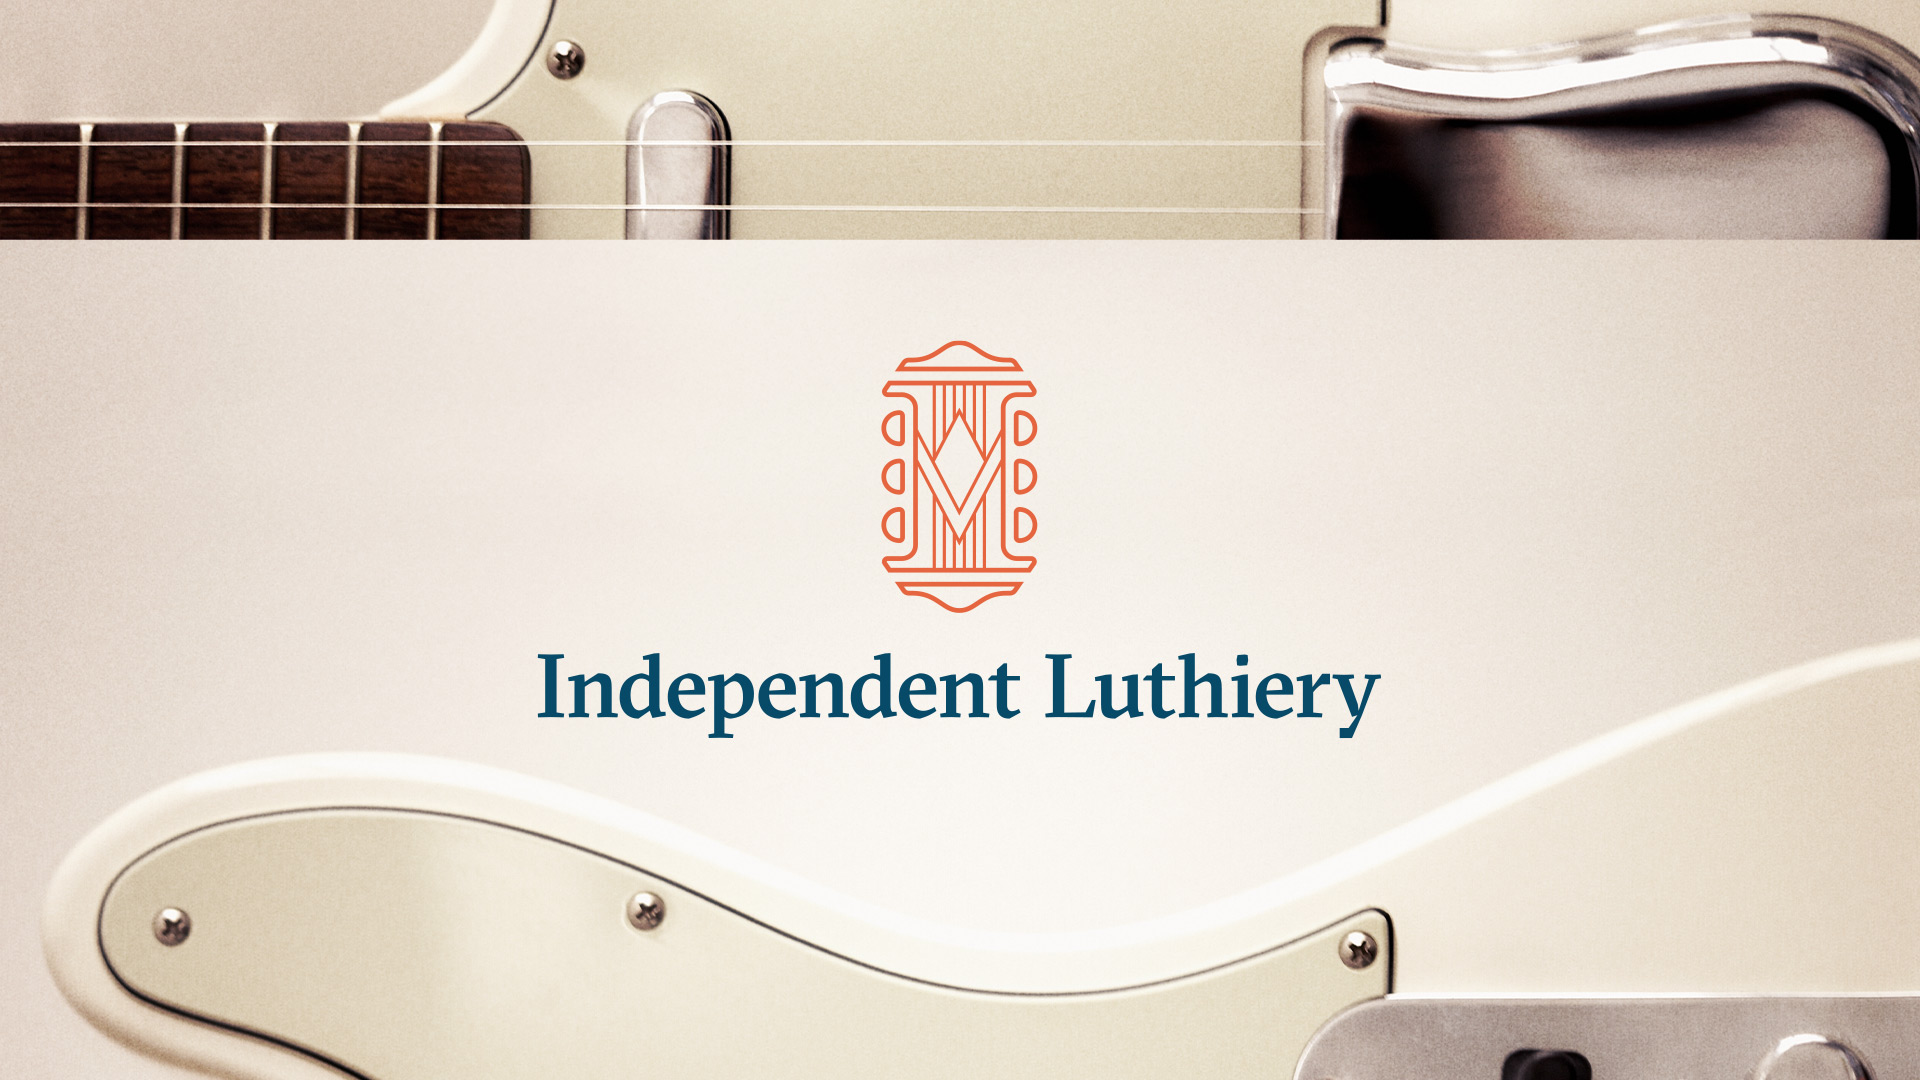 Independent-Luthiery_Header_Adam-Wentworth_01.jpg